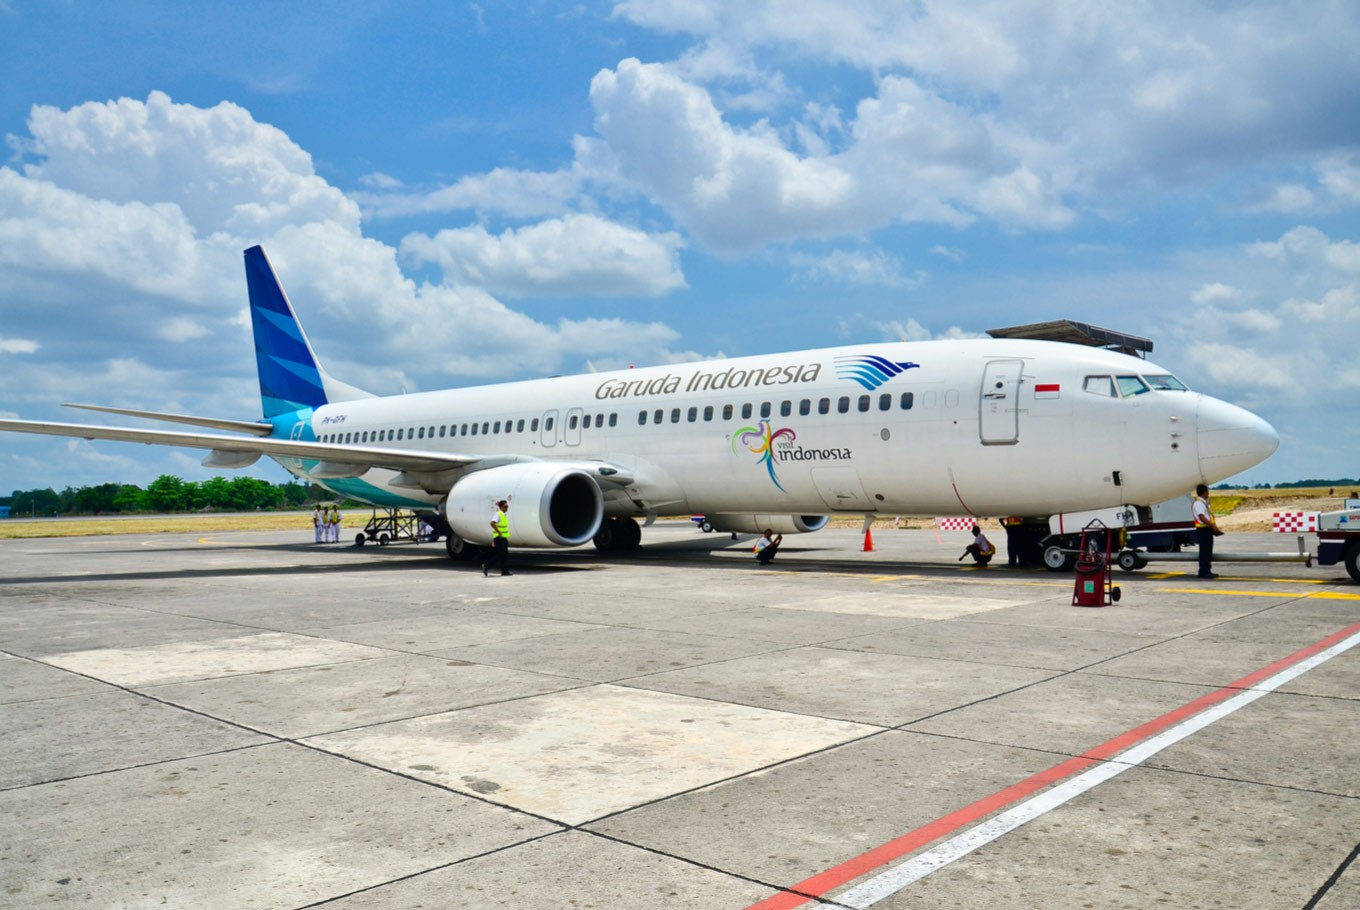 Airlines cut fares to adjust to price ceiling